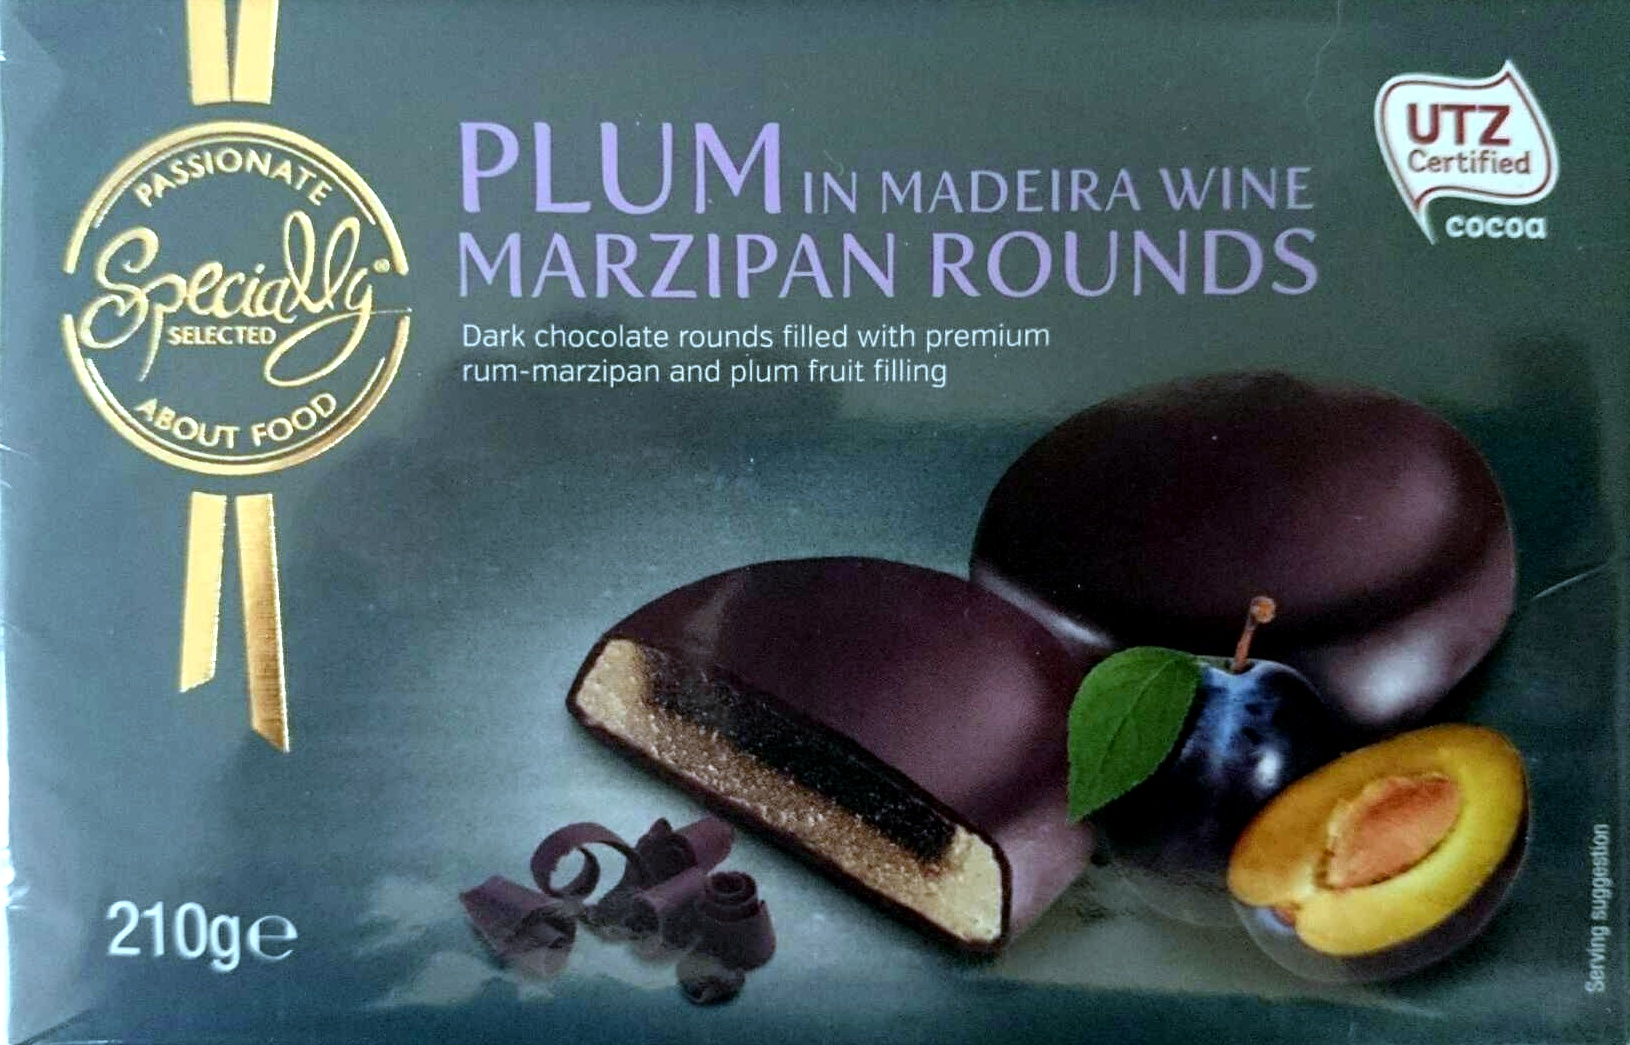 Plum Marzipan Rounds in Madeira Wine - Product - en